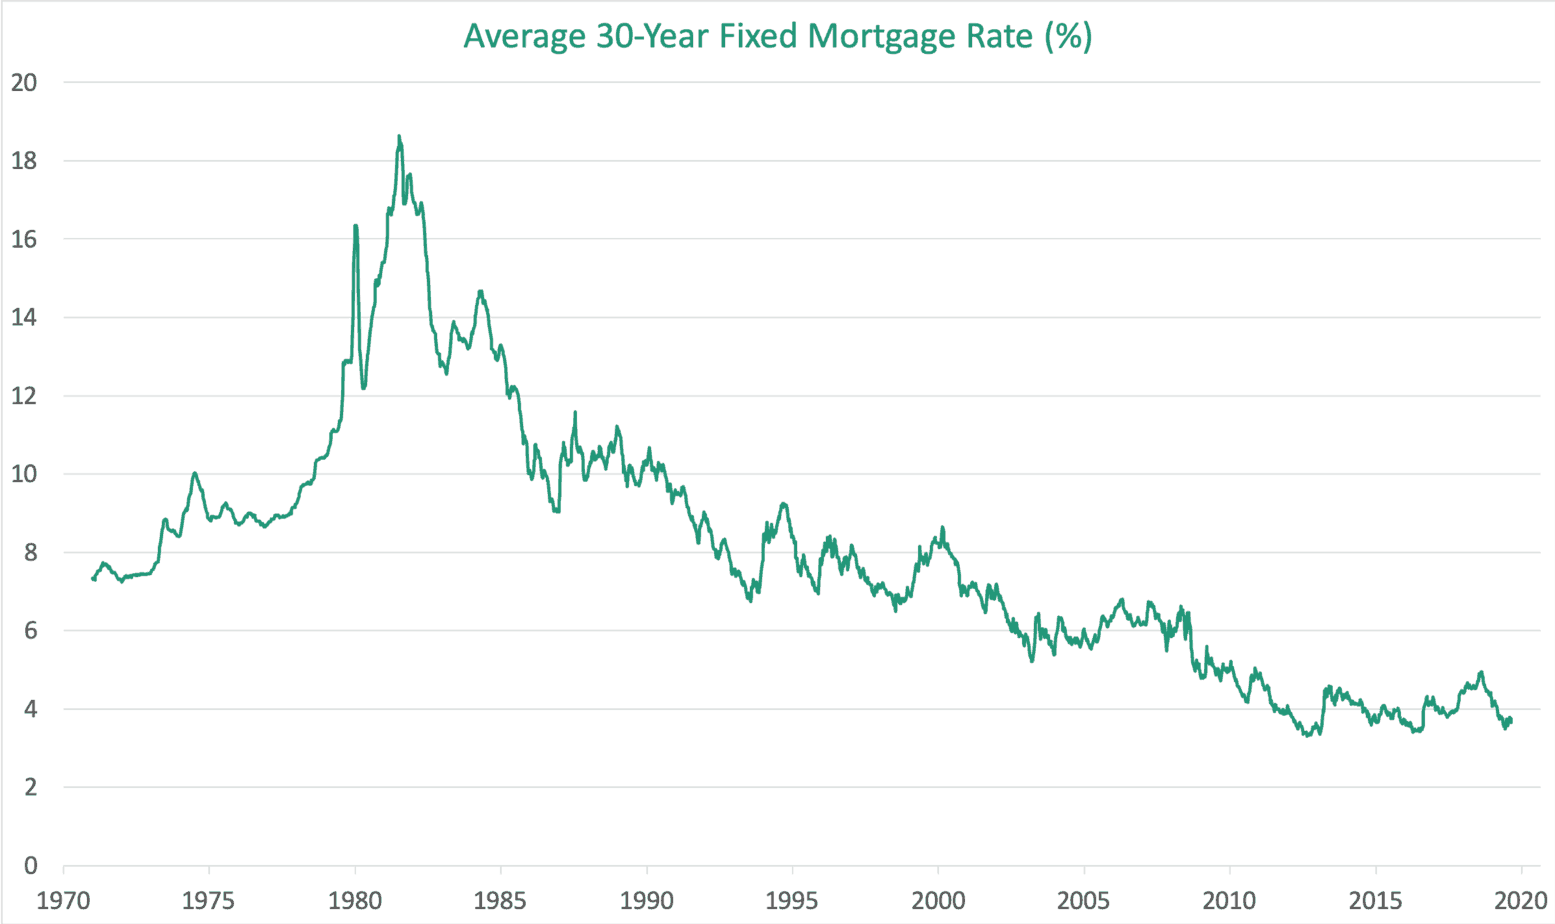 Average 30 Year Fixed Mortgage Rates in US